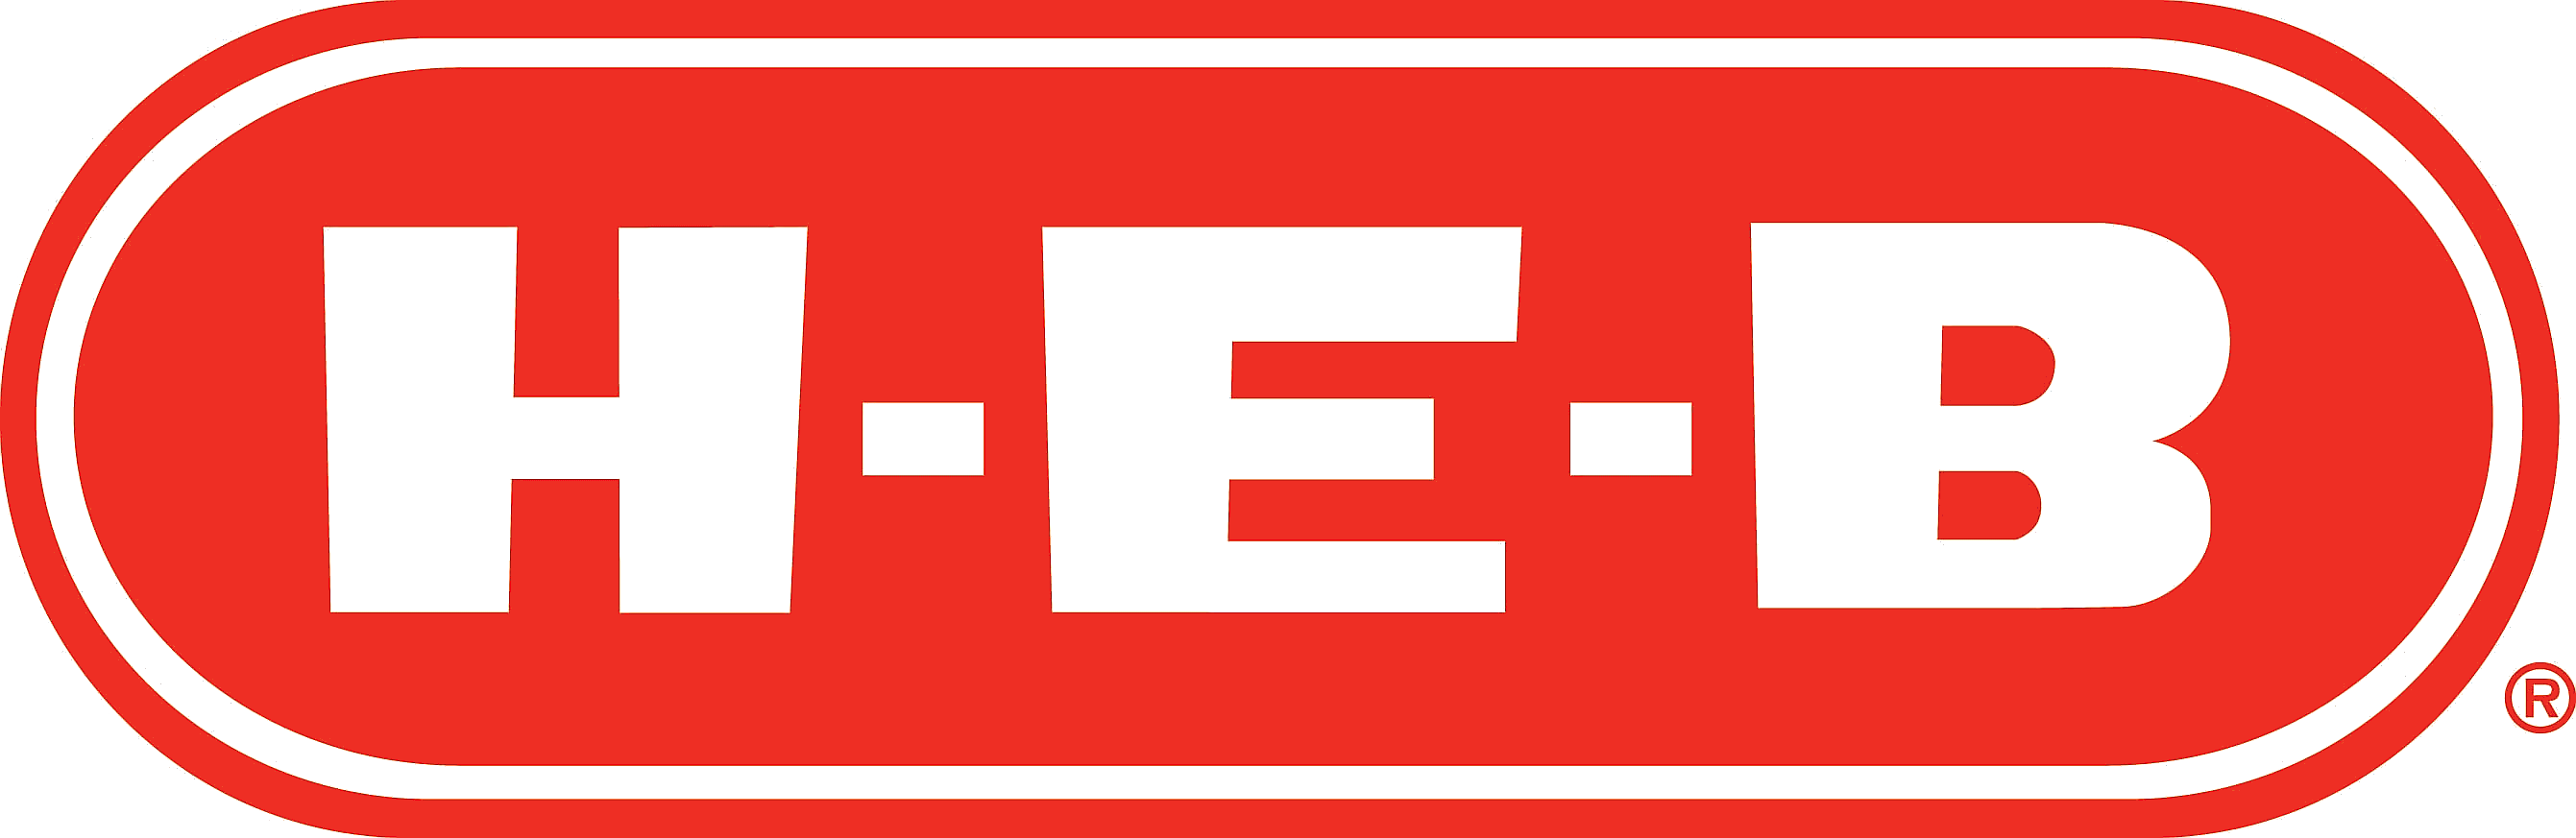 File Logo Of The Heb Grocery Company Lp Png Wikimedia